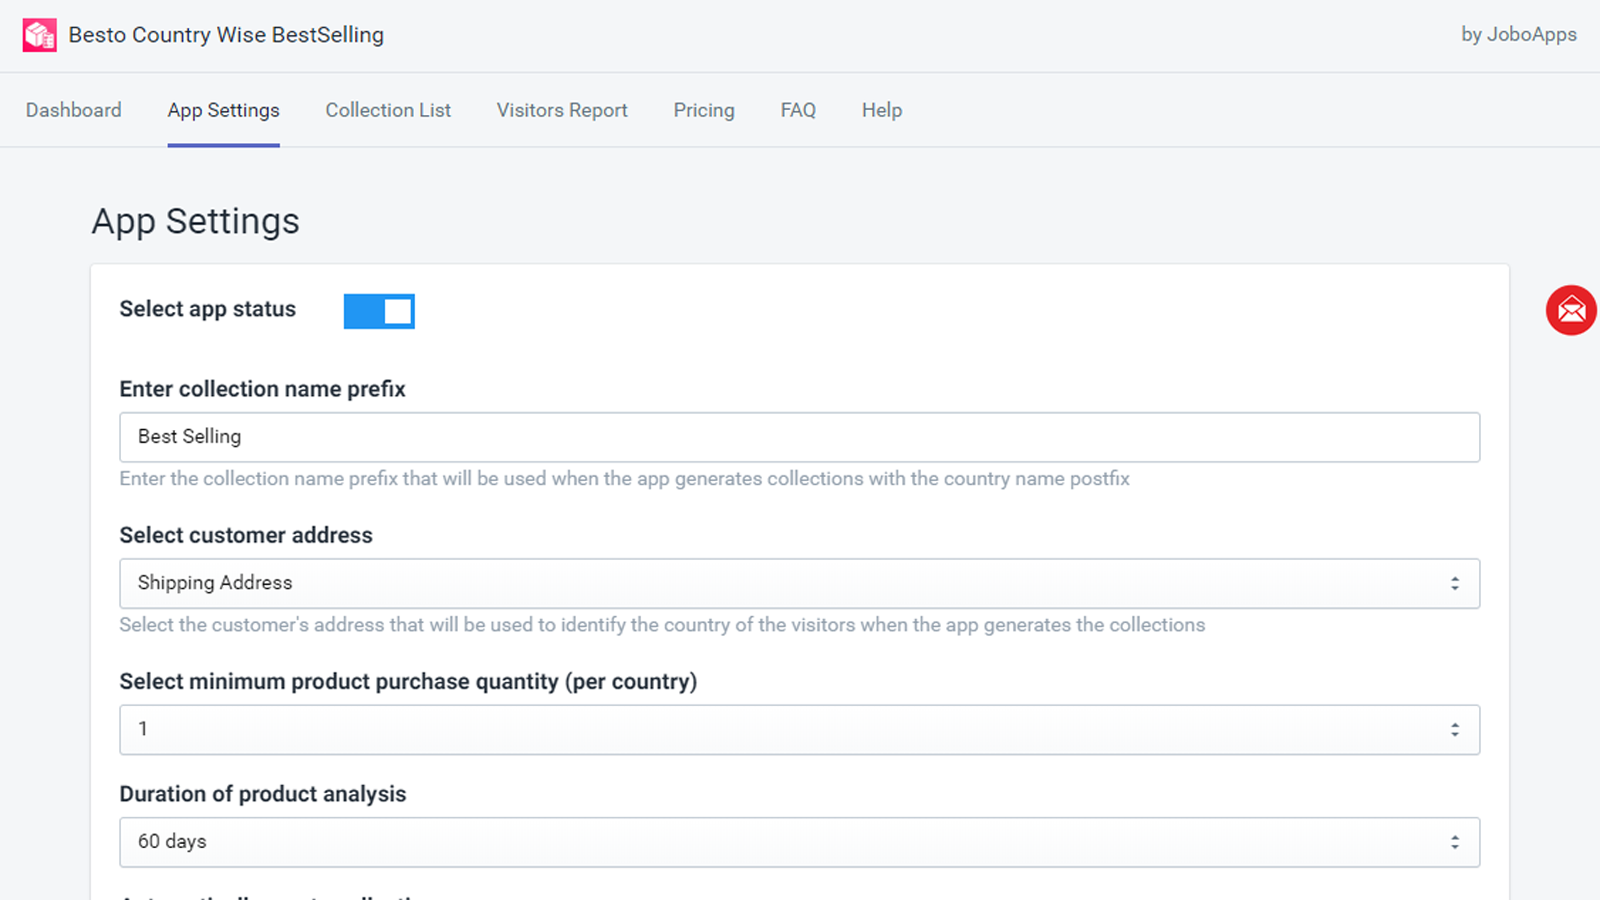 besto country wise best sellers app setting page